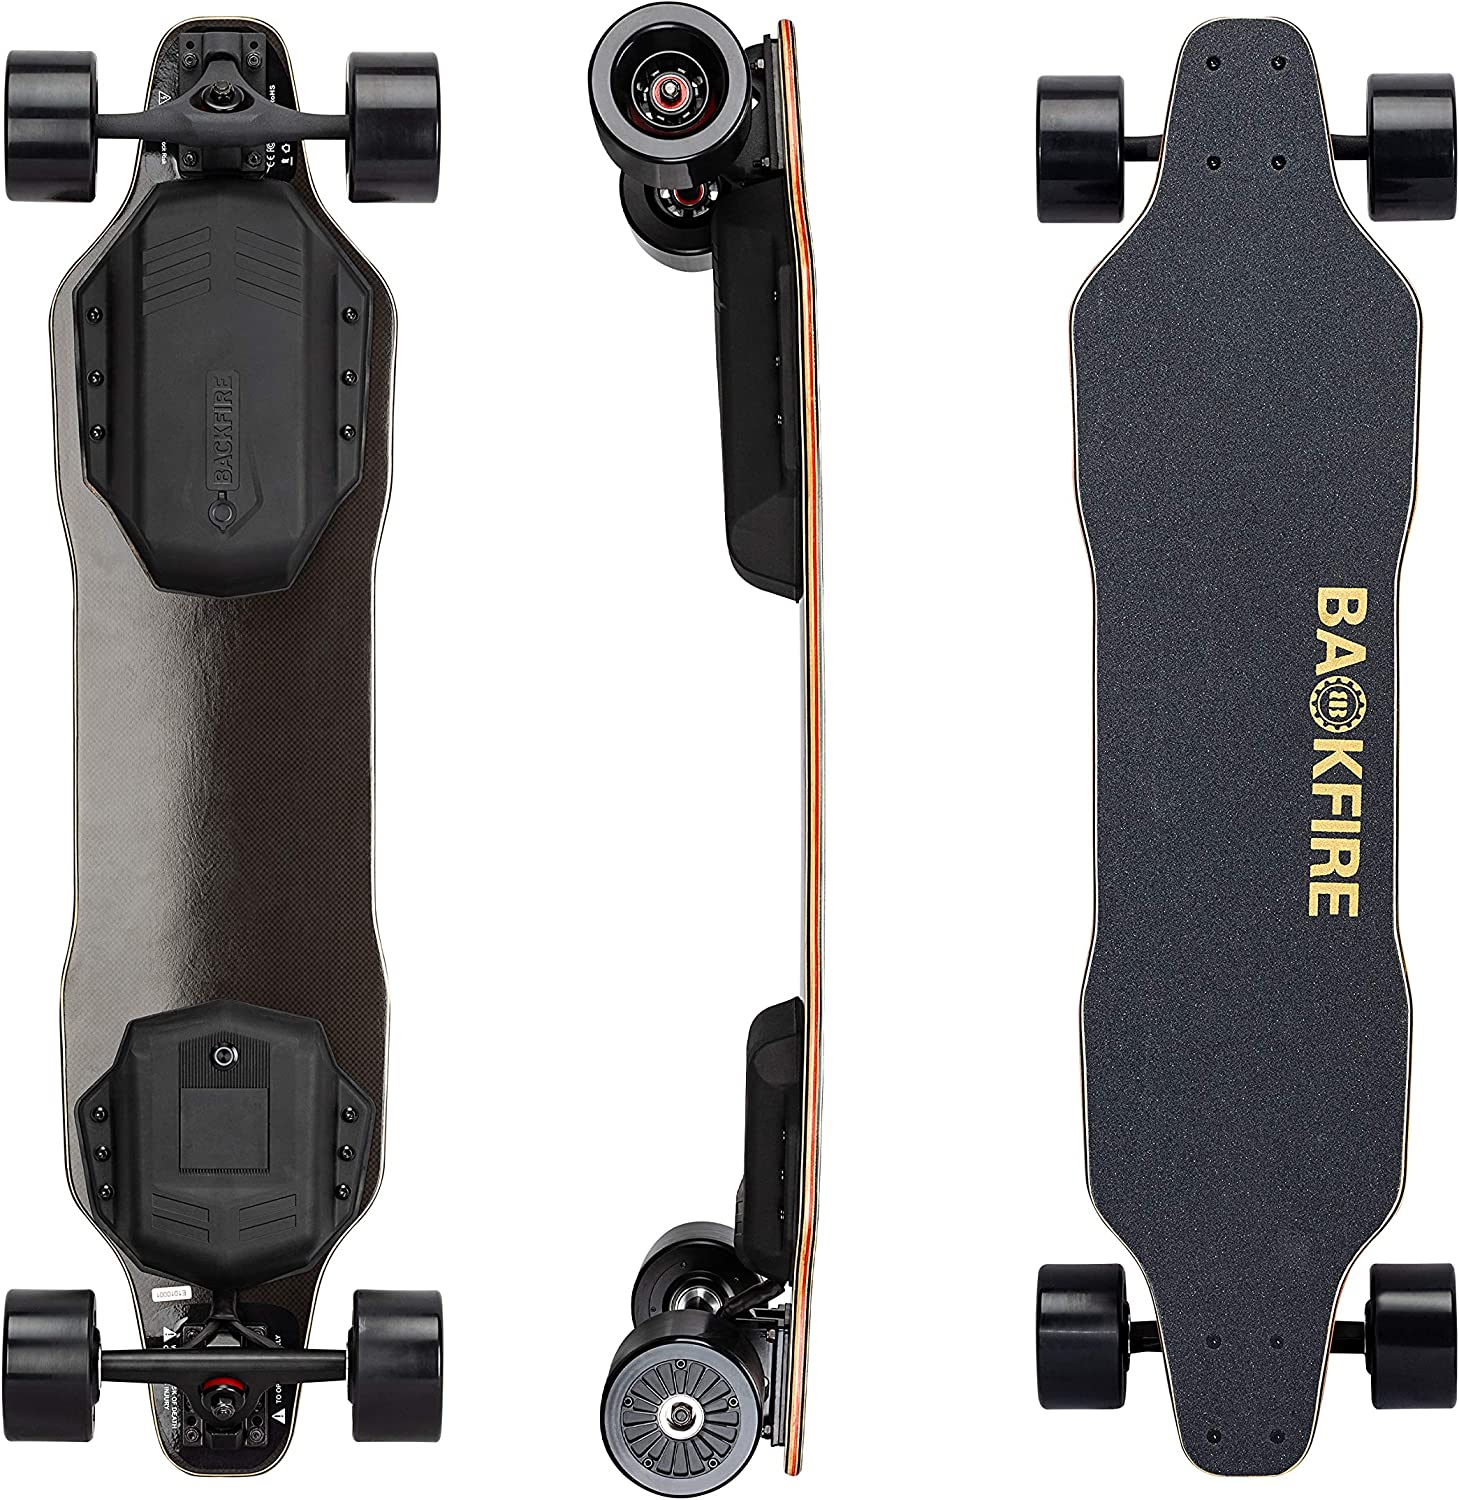 BACKFIRE G2 Black Electric Longboard with Remote Control, Hobbywing Motors and 96mm Wheels